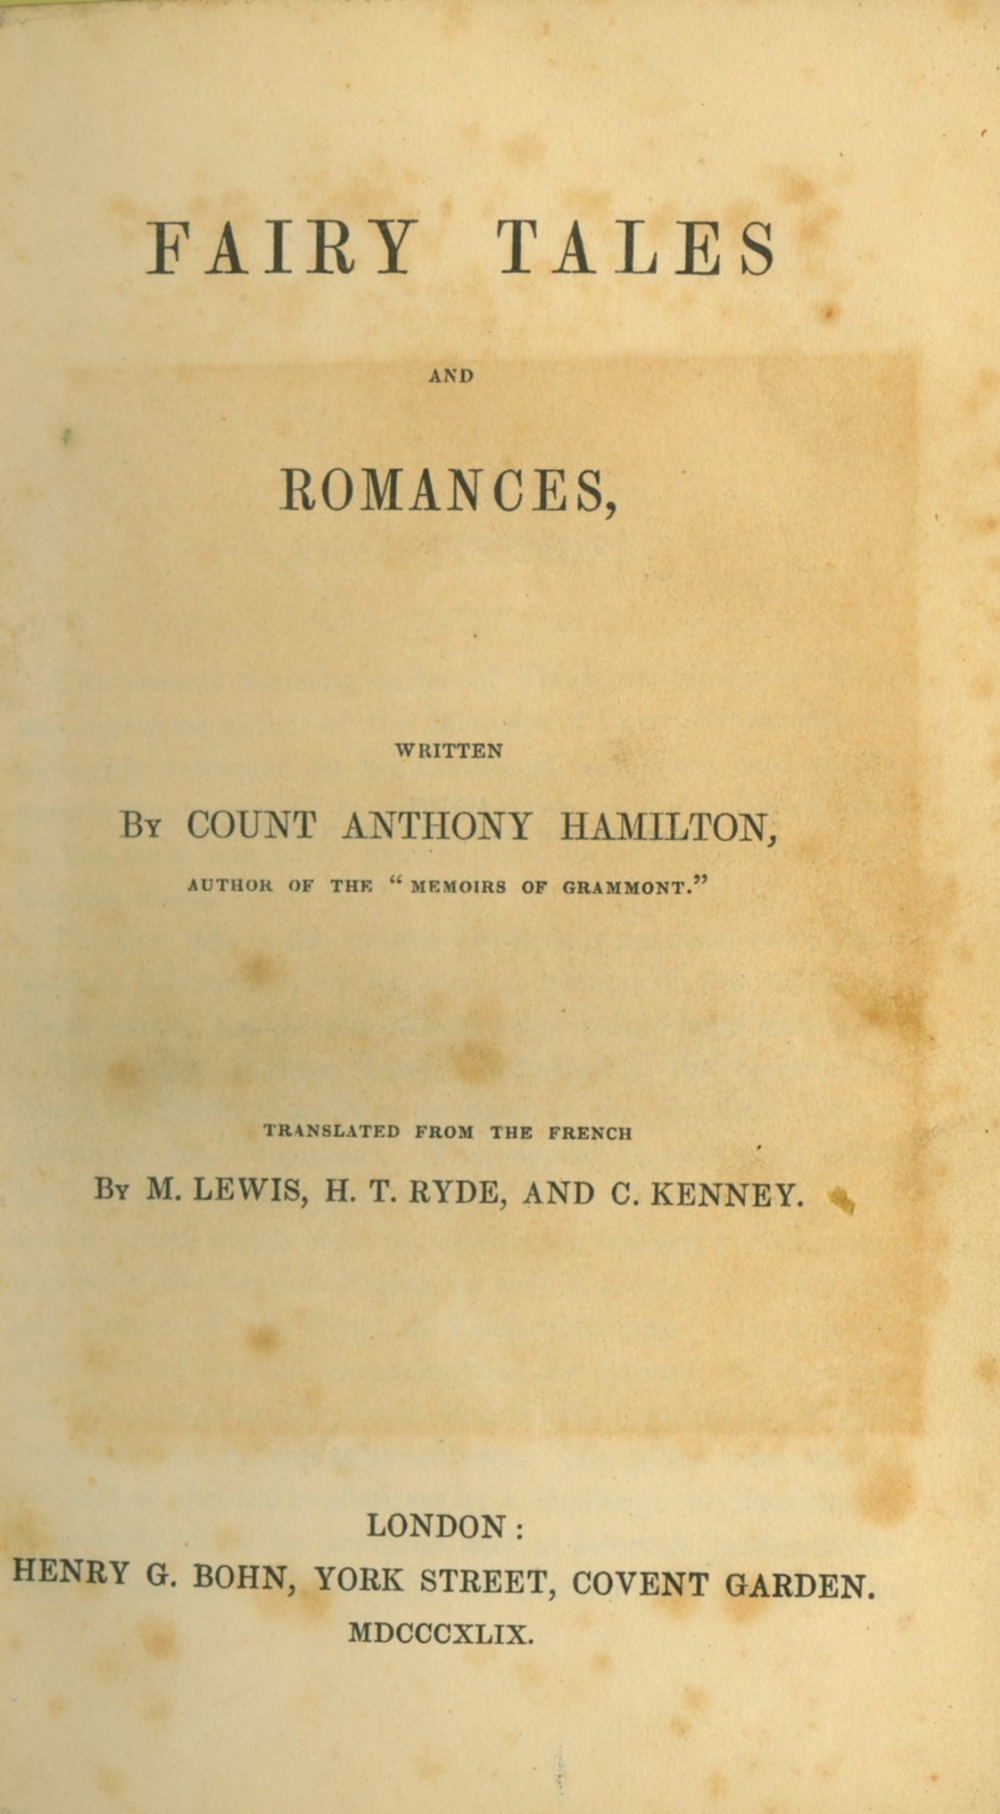 Hamilton (Count Anthony) Fairy Tales and Romances, 8vo L. 1849. Engd. ports, cont. hf. mor.